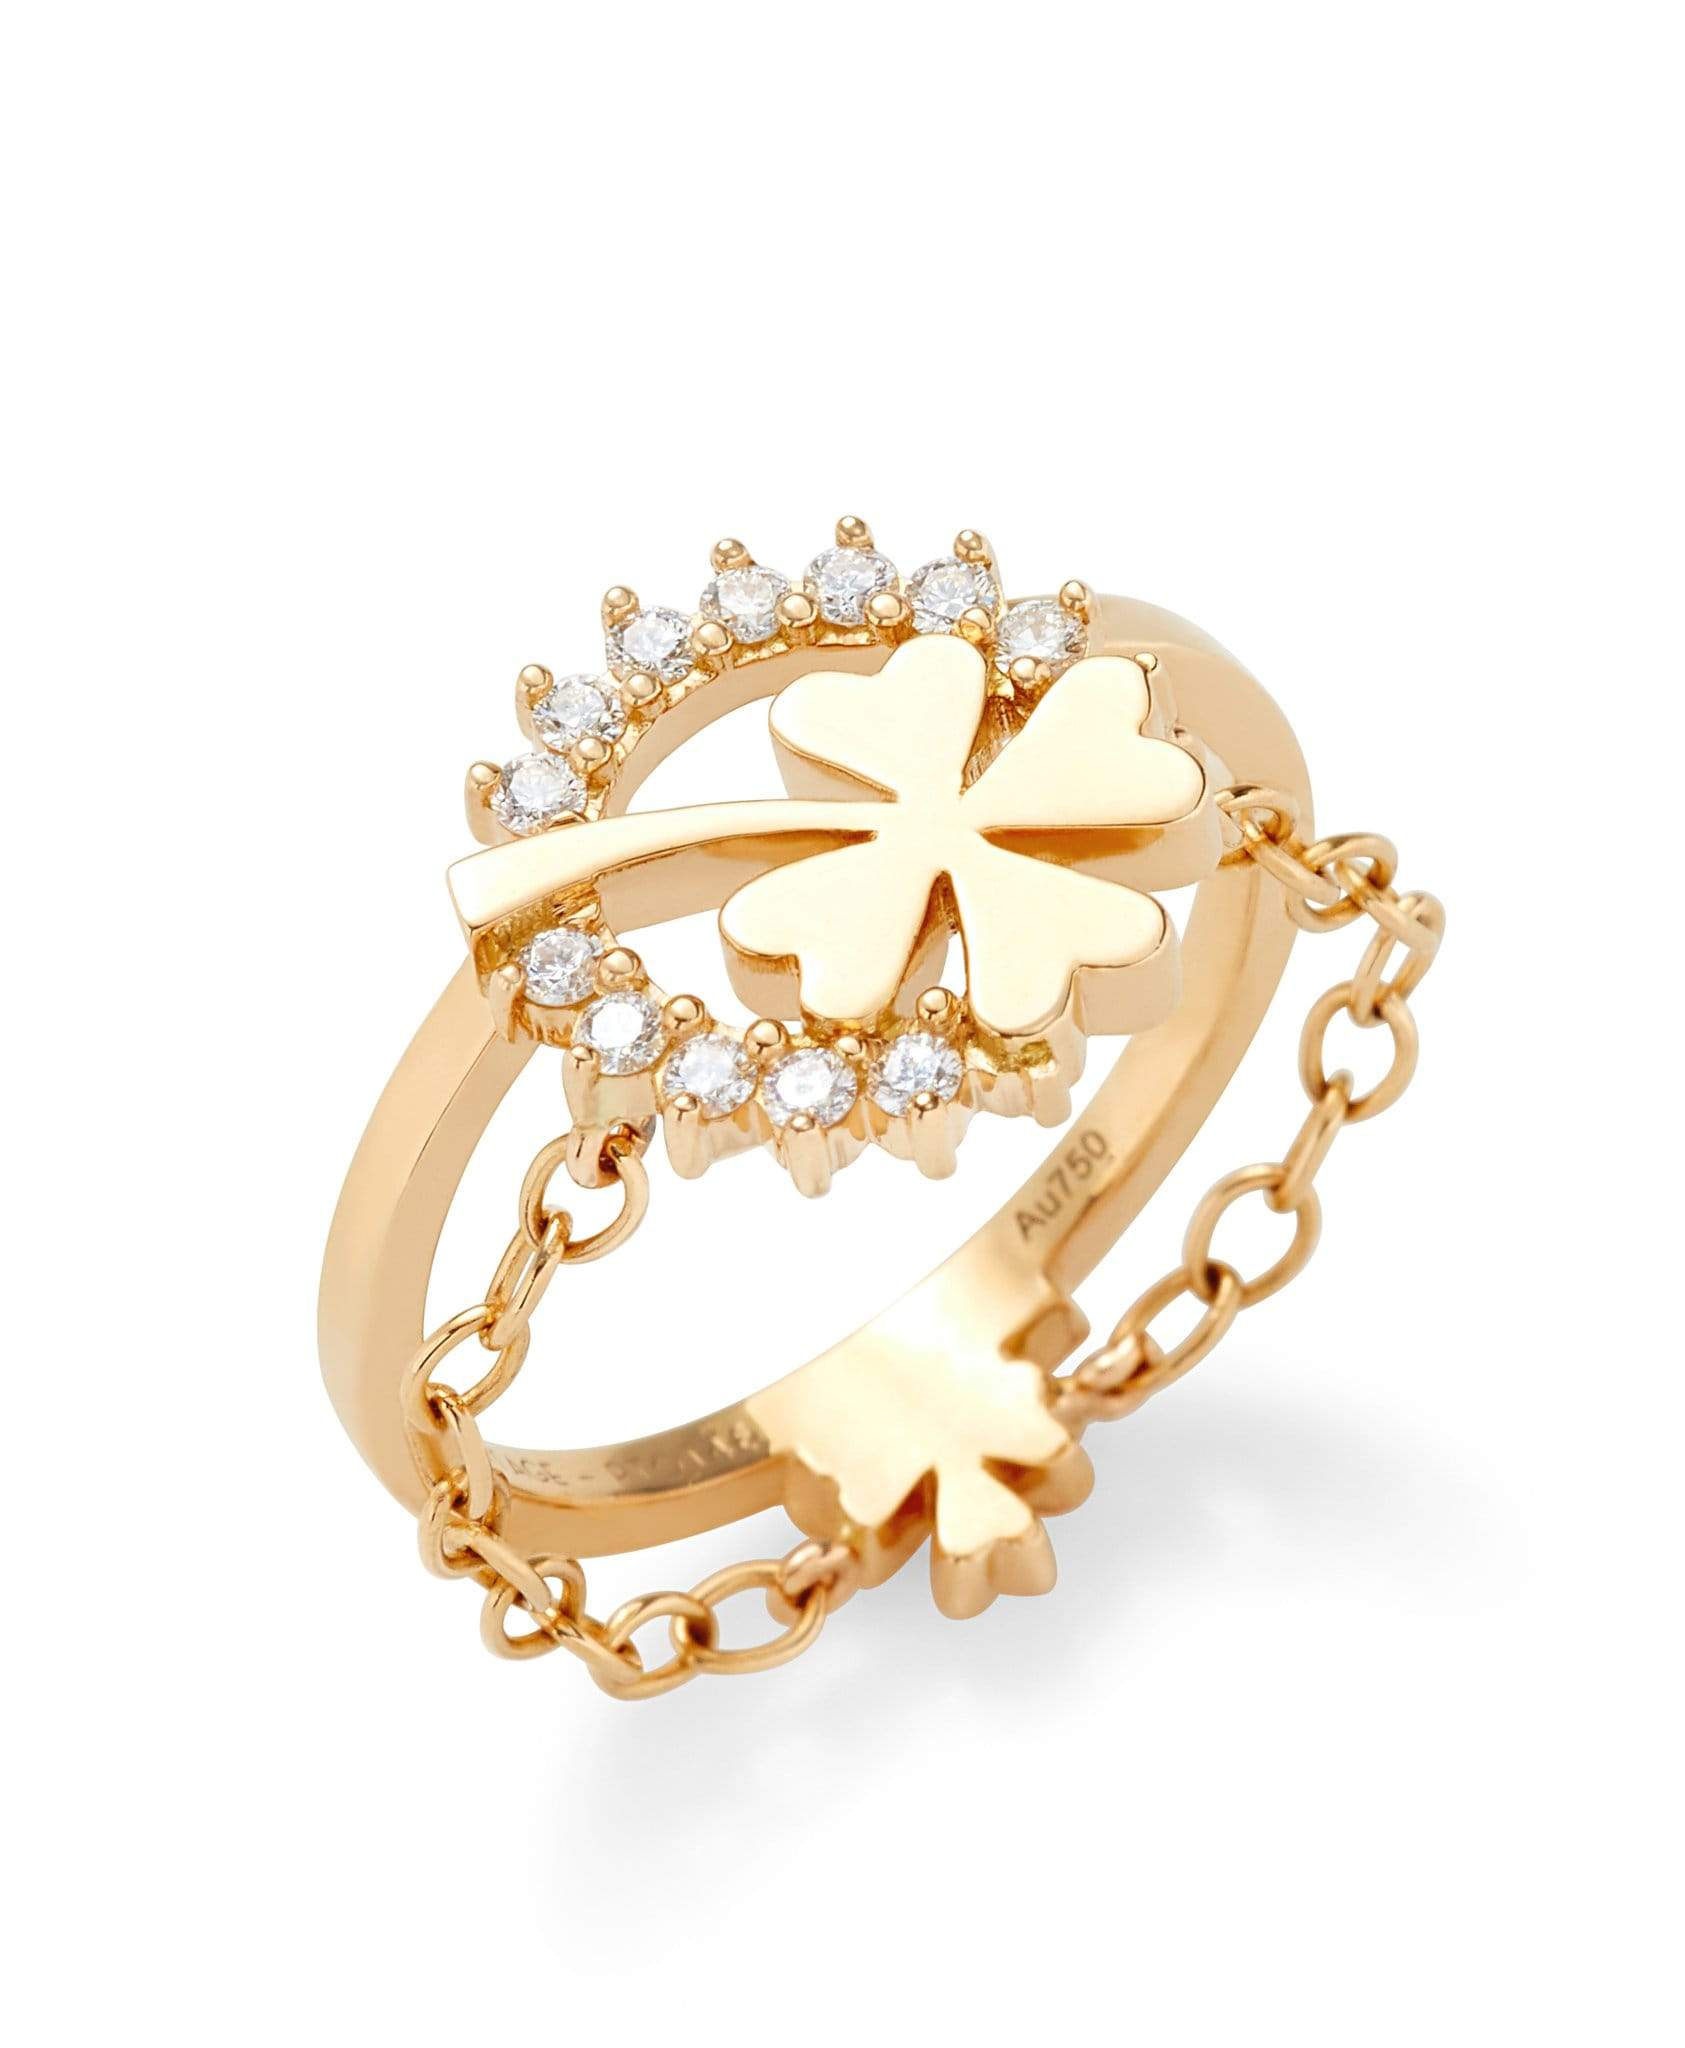 Medium Luck Ring: Discover Luxury Fine Jewelry | Nouvel Heritage || Yellow Gold